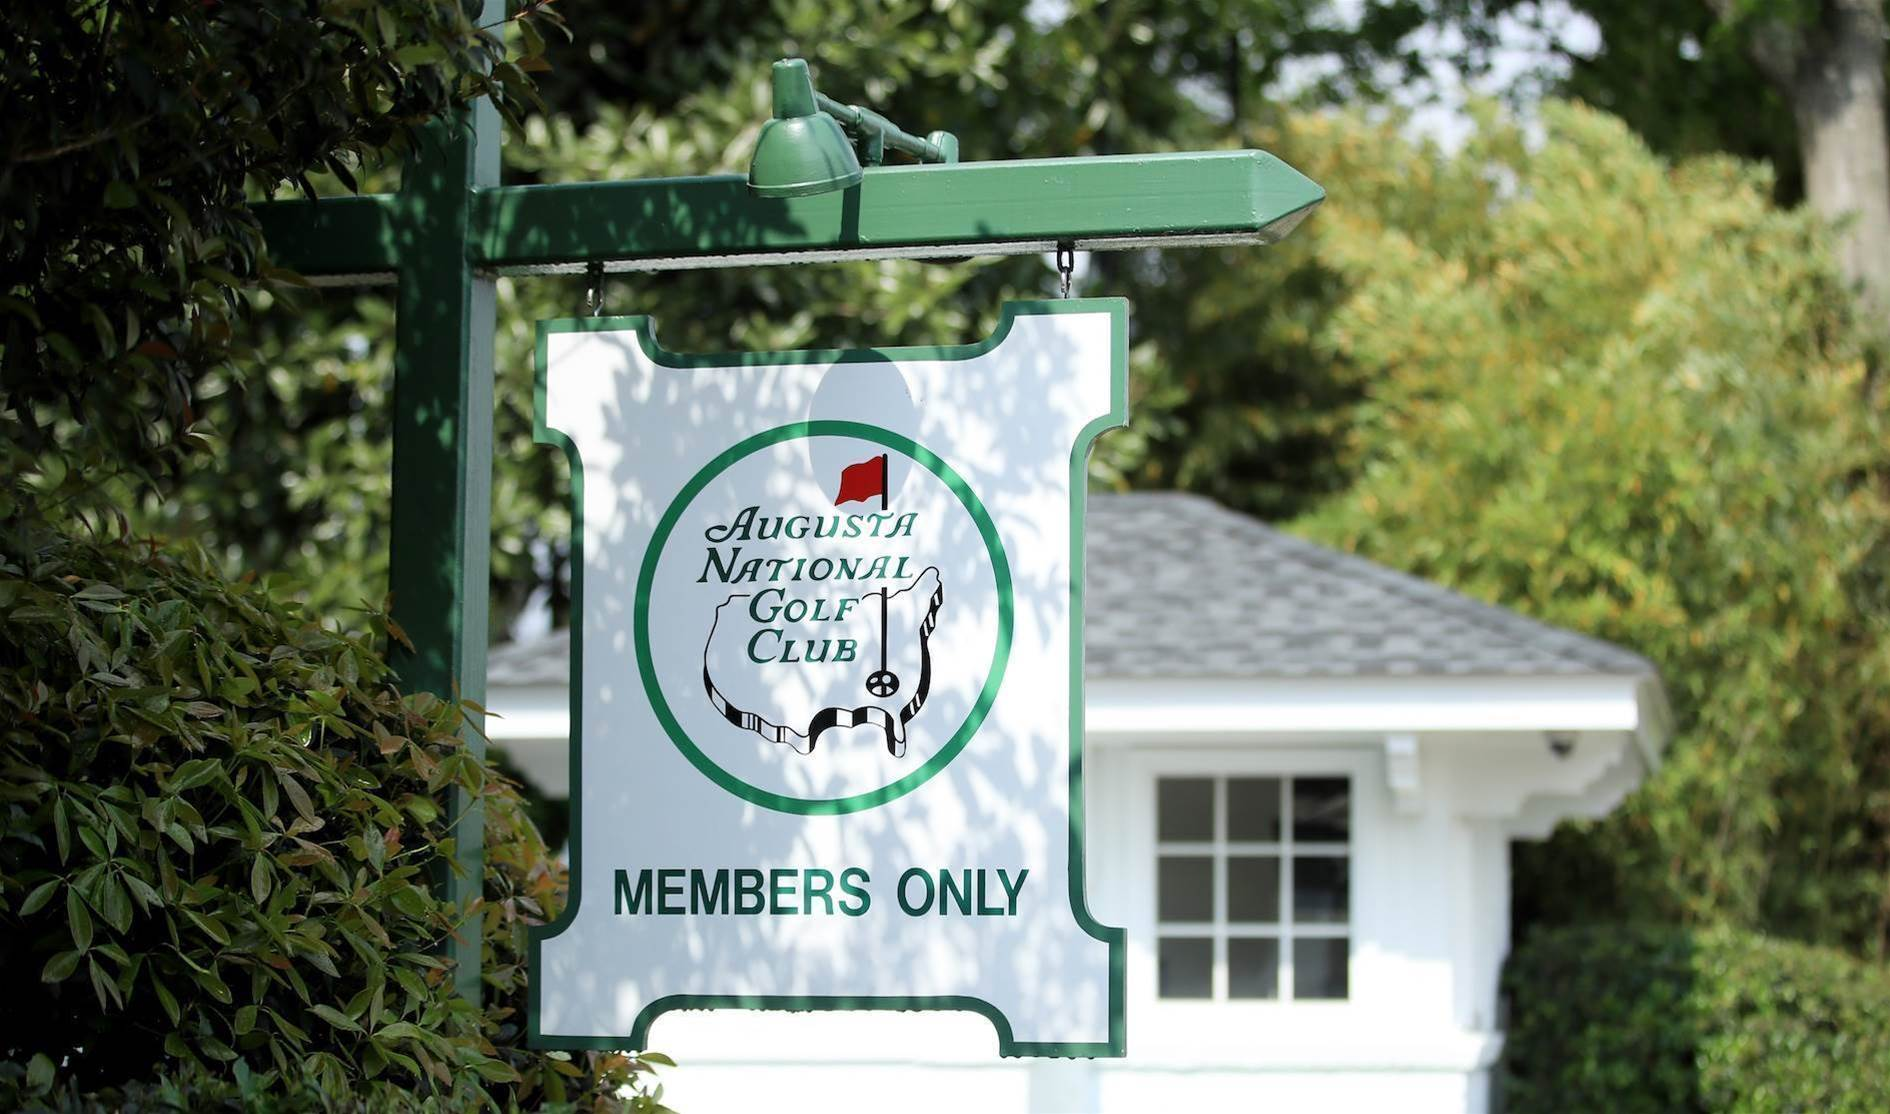 Augusta National's first impression